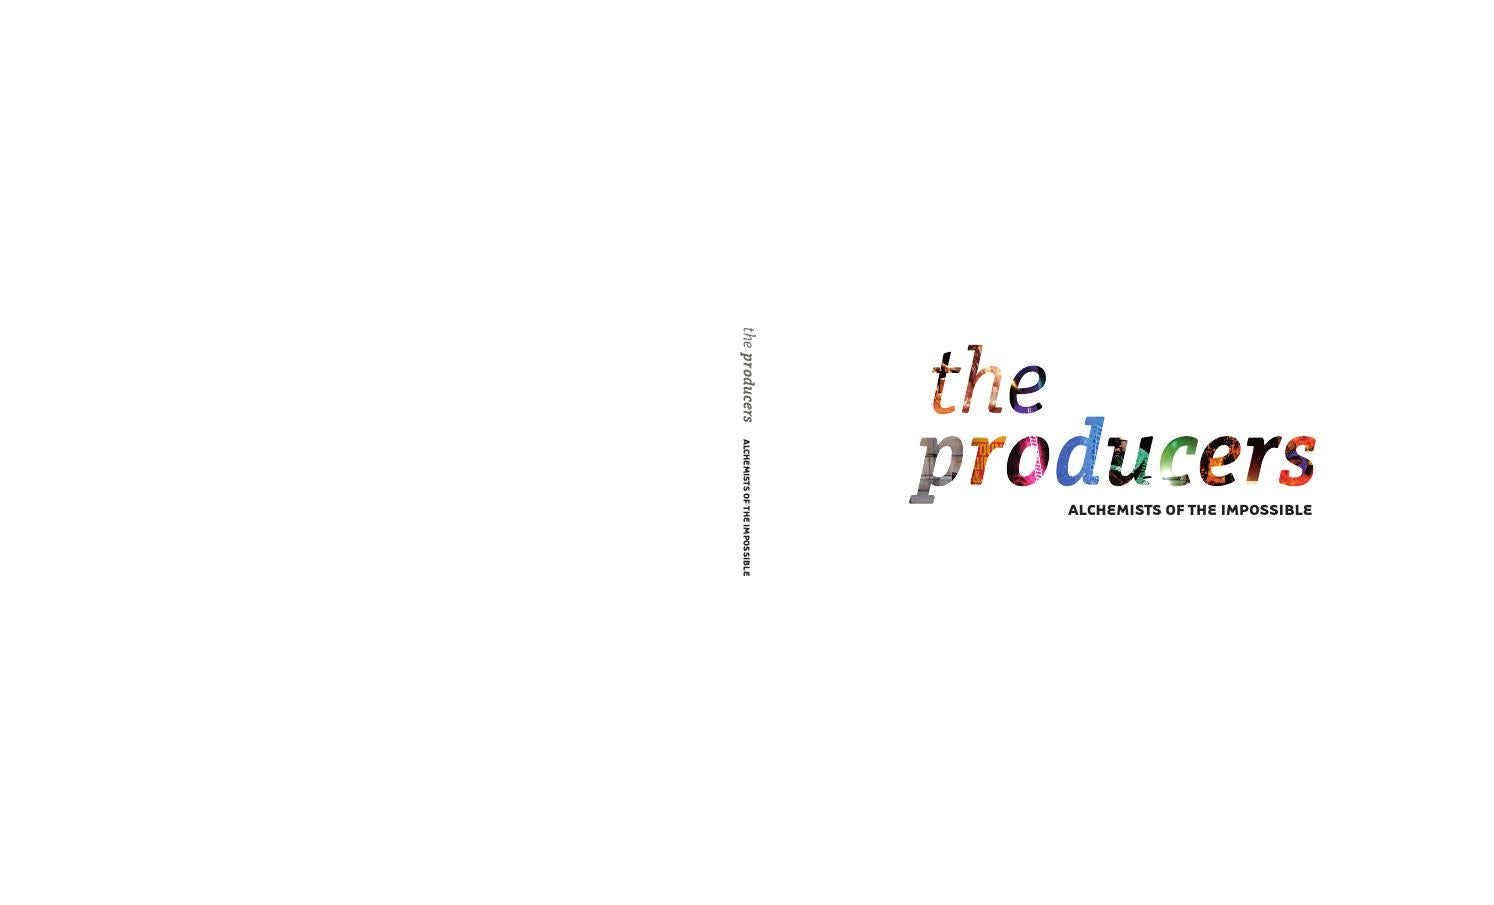 The producers alchemists of the impossible by jerwoodcf issuu fandeluxe Image collections